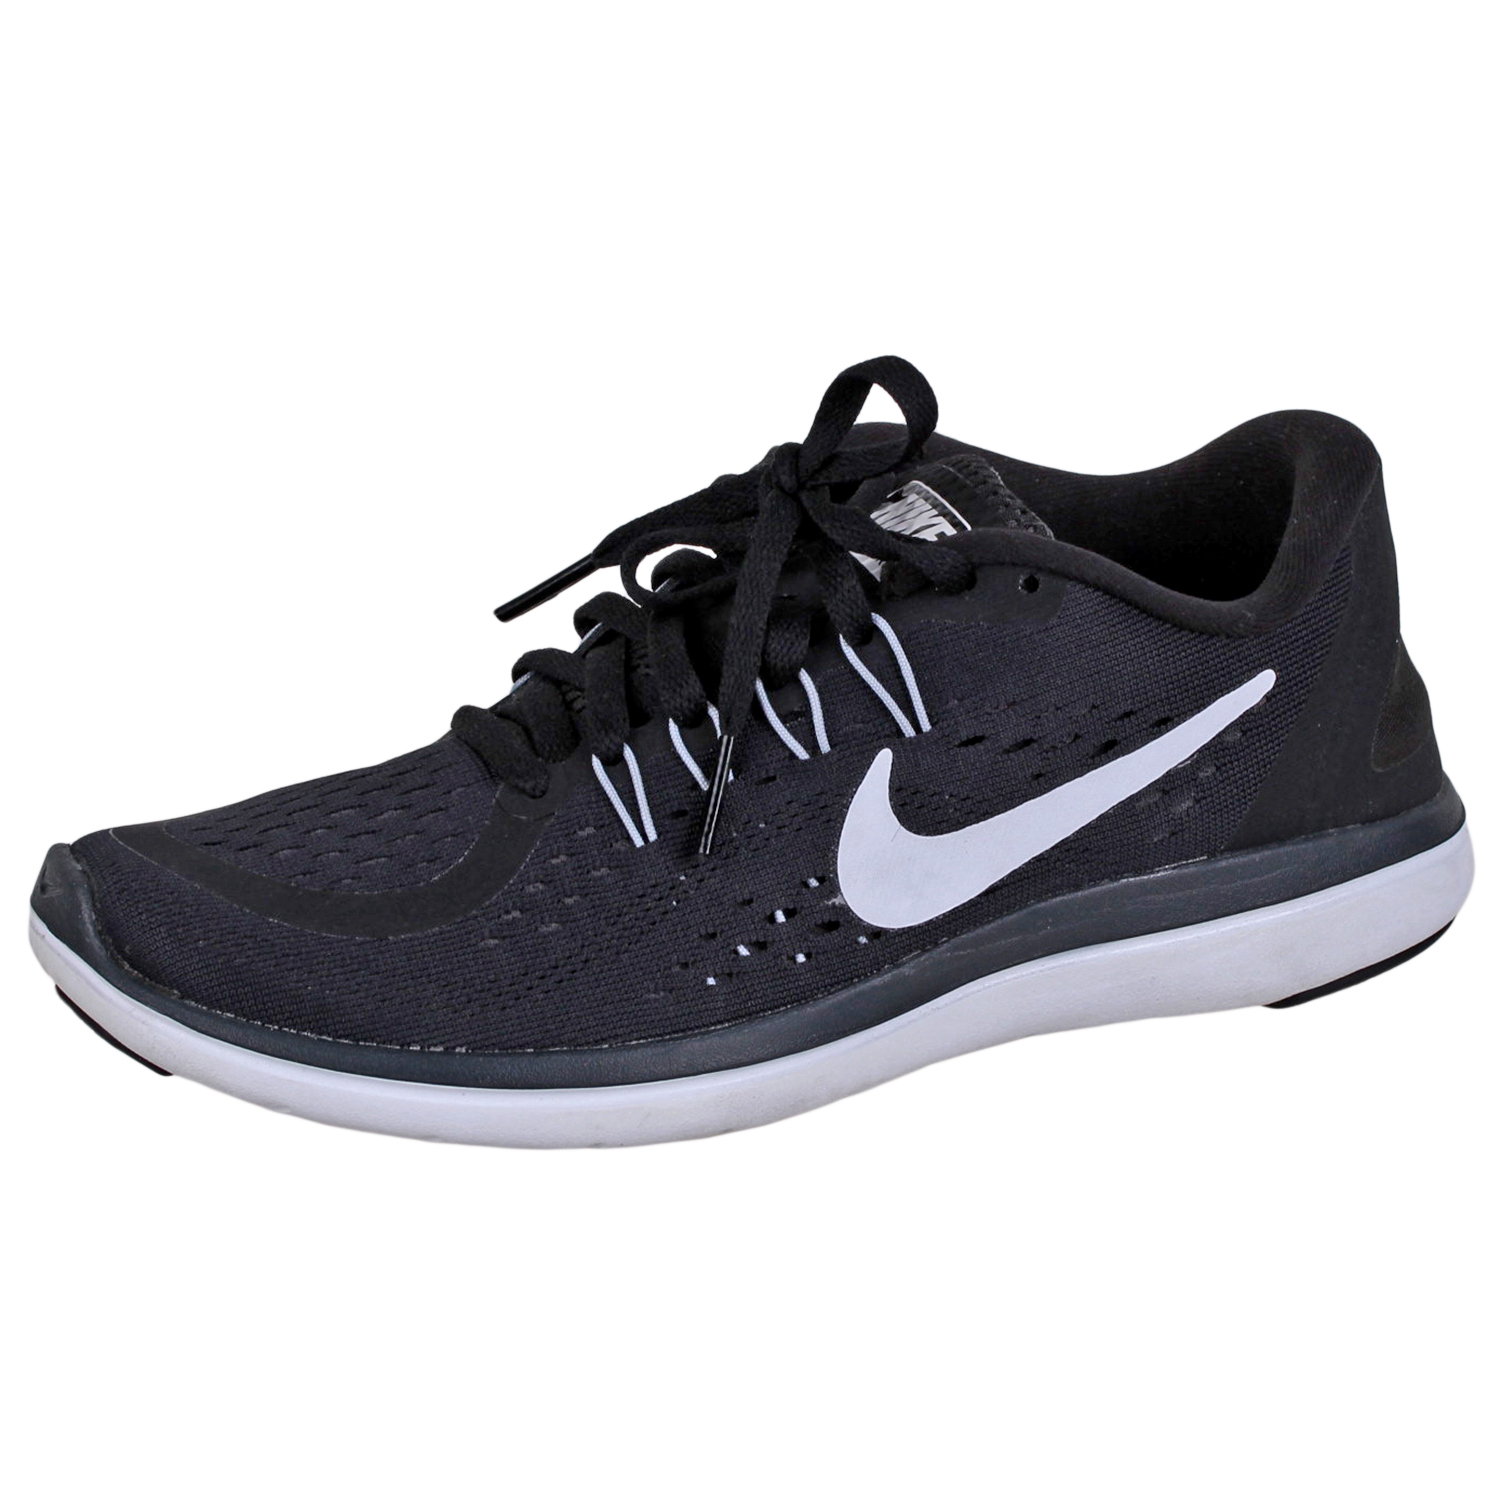 Nike Flex 2017 RN Women's Running Shoes | Best nike running